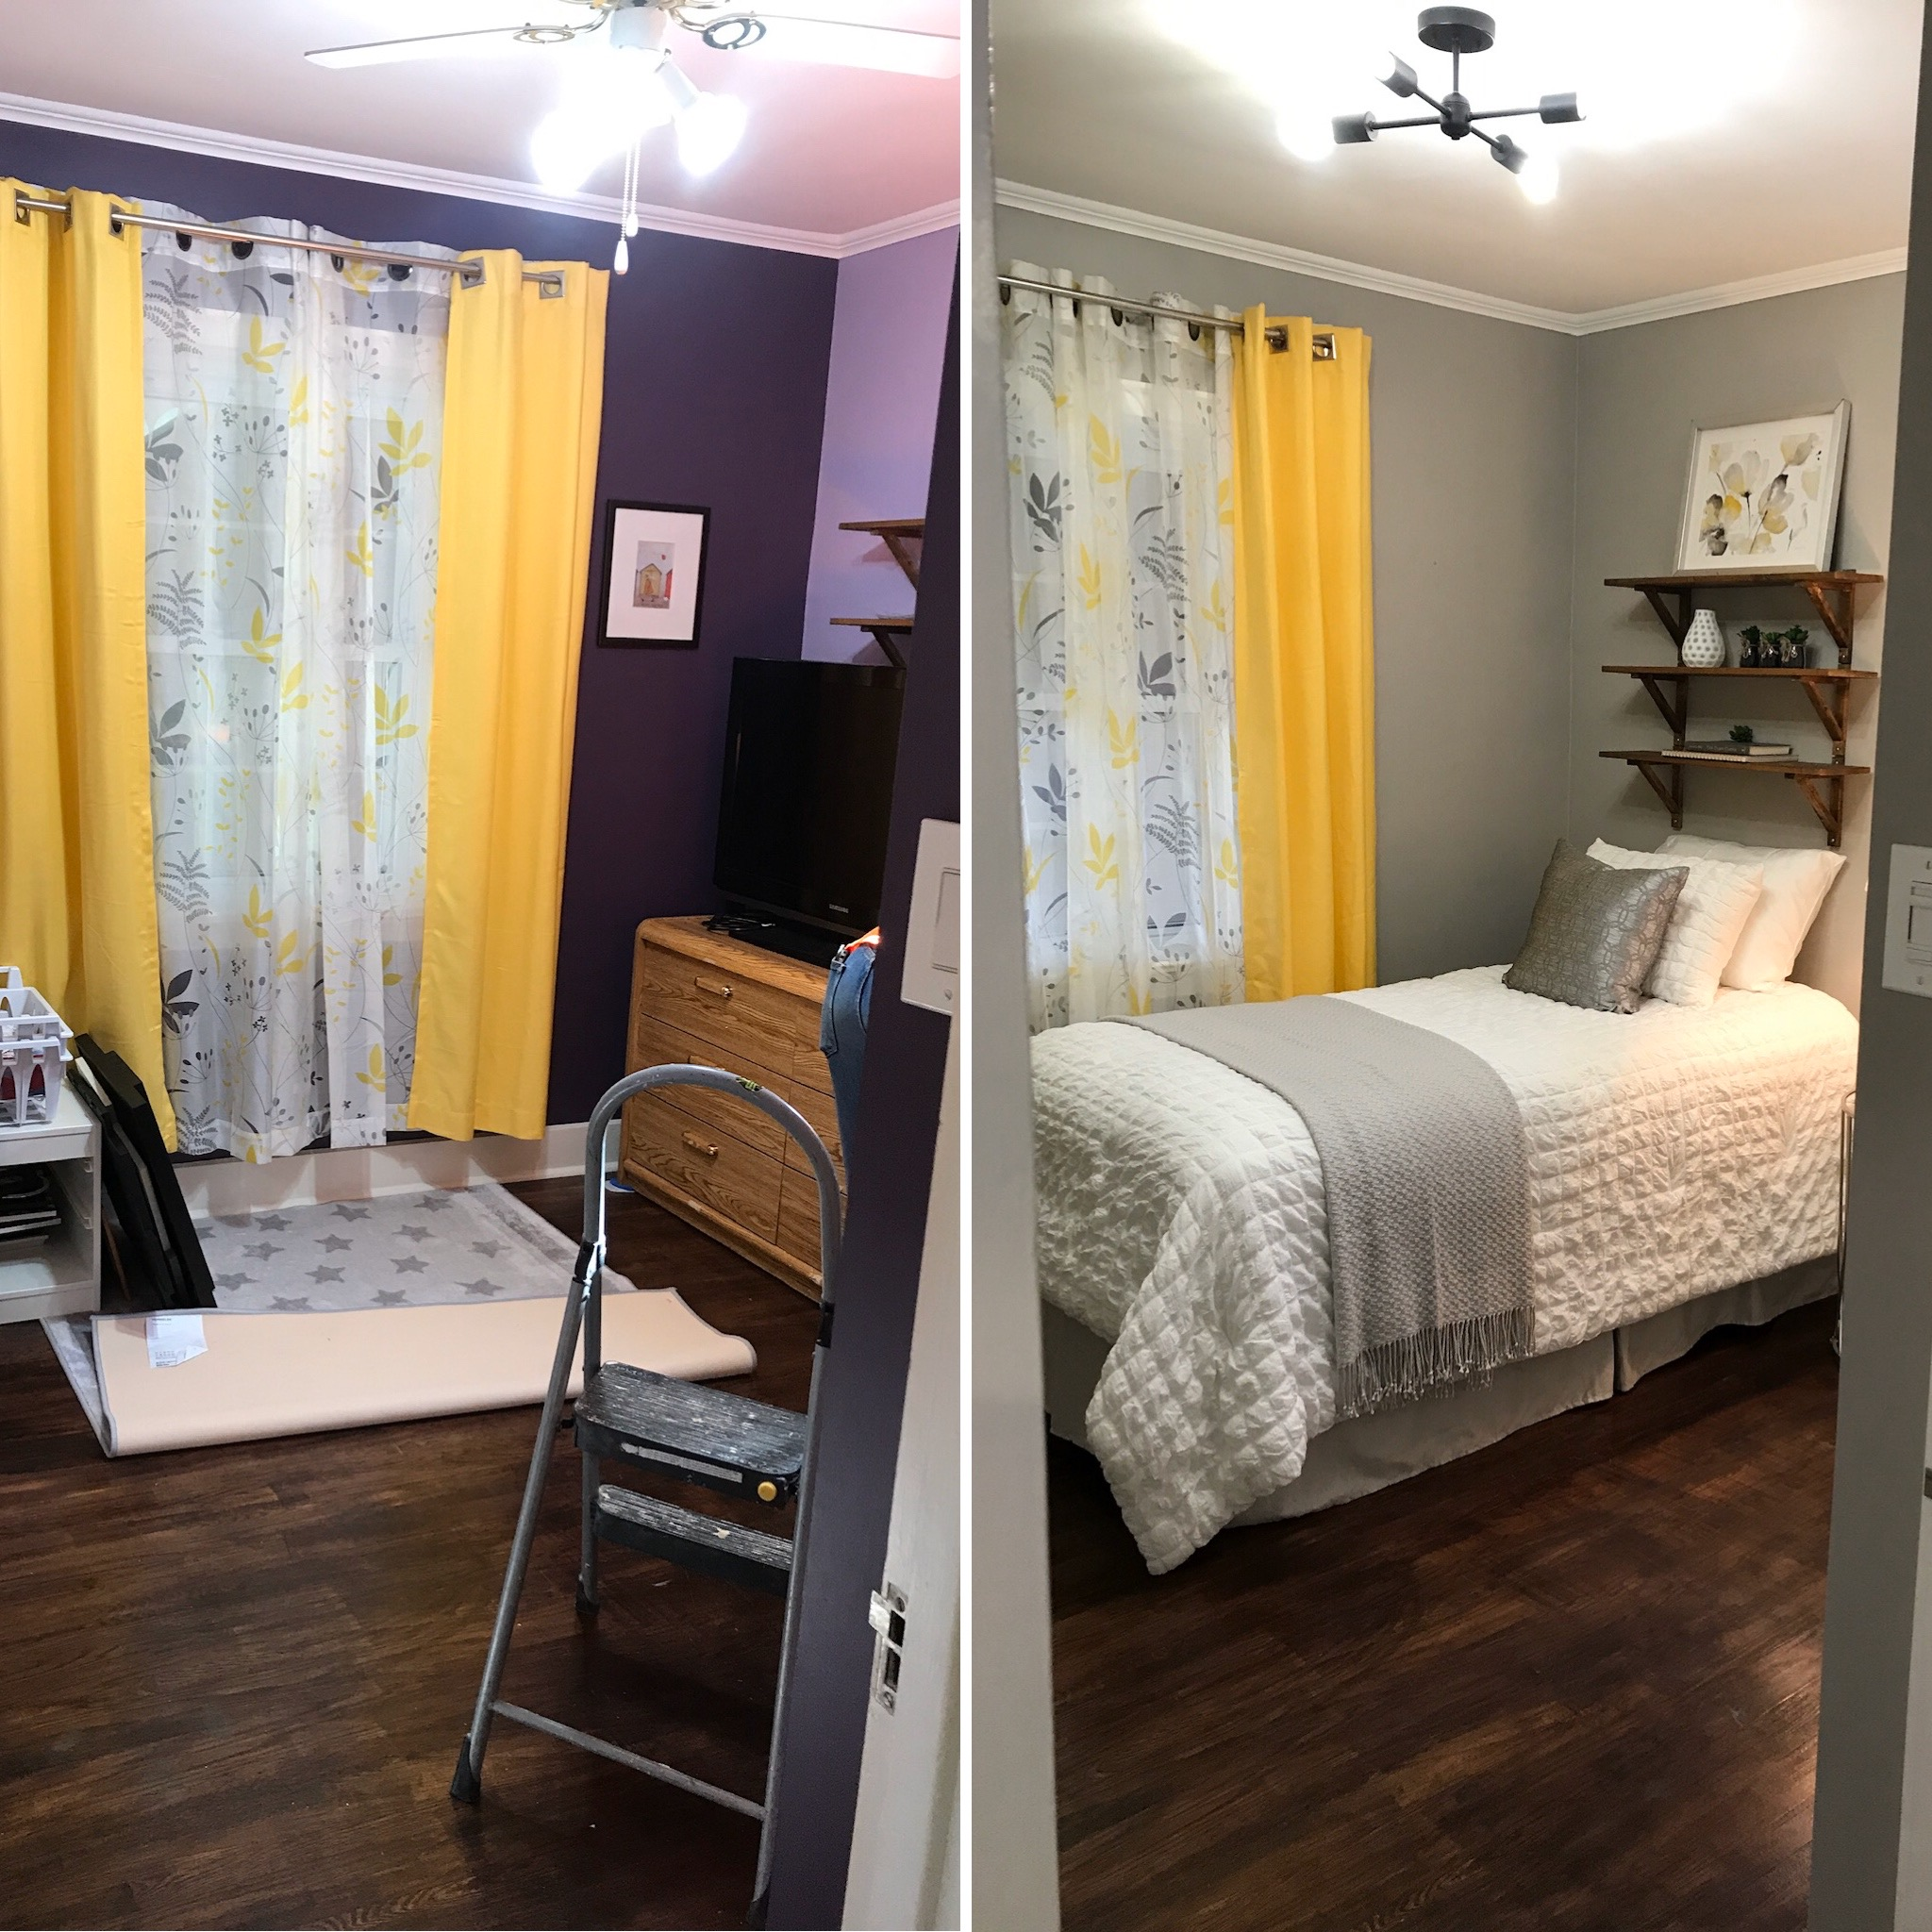 Semi-Occupied Home | Bedroom Transformation